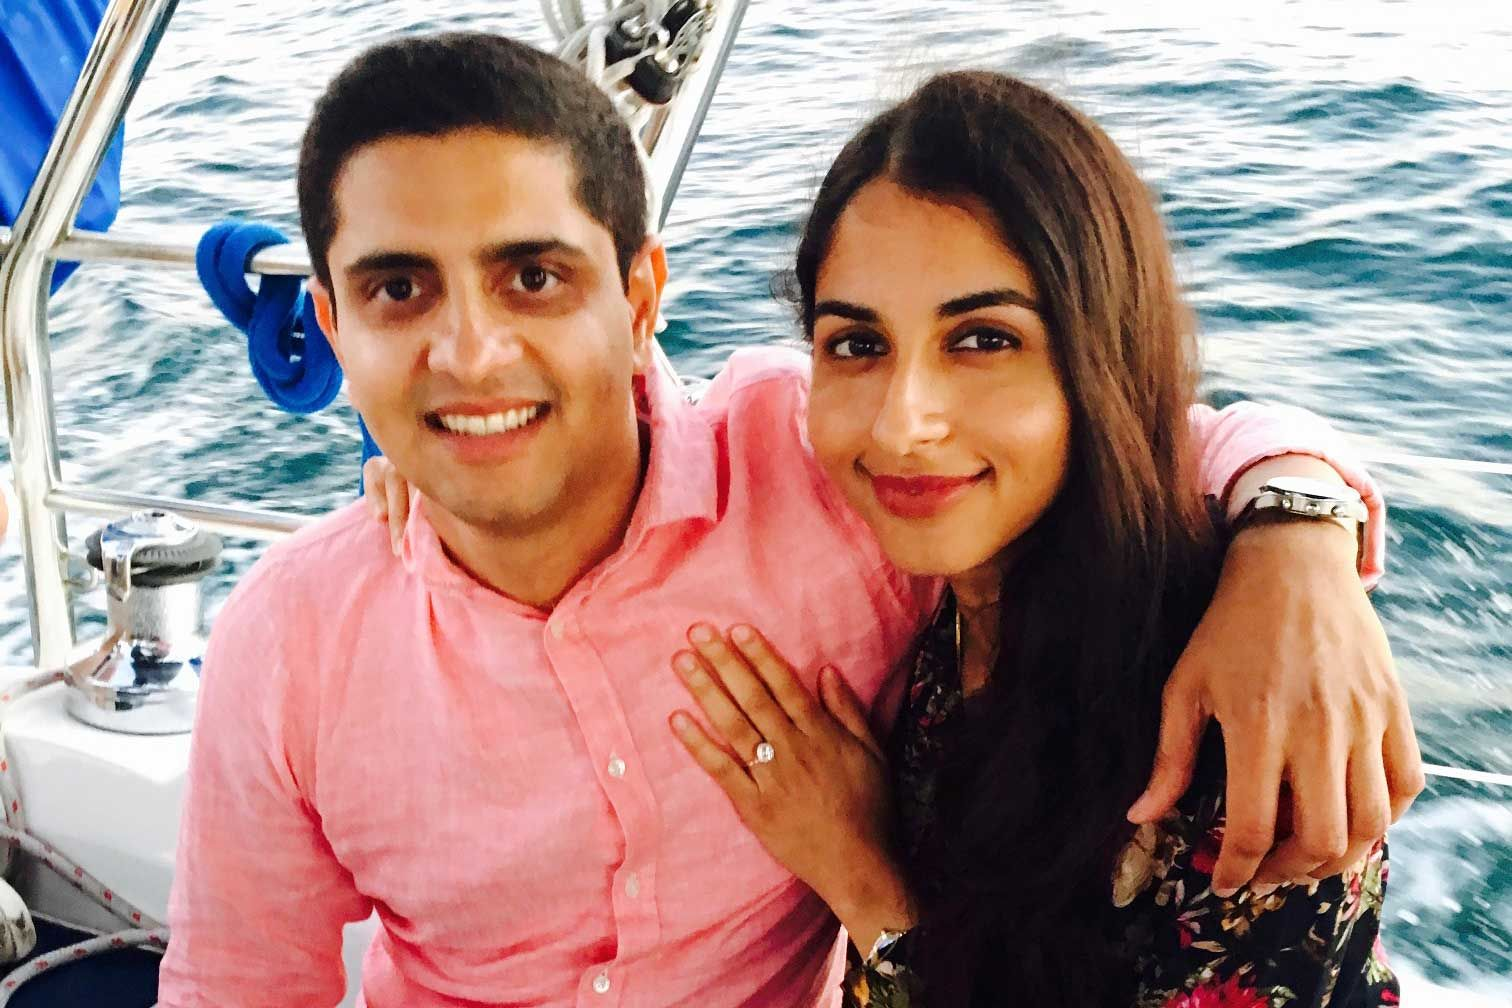 Nri Non Resident Indian Desi Couple Raises Money To Feed 25000 Children Instead Of Throwing A Lavish Wedding Usc Marshall Alum And Sweetheart Gather